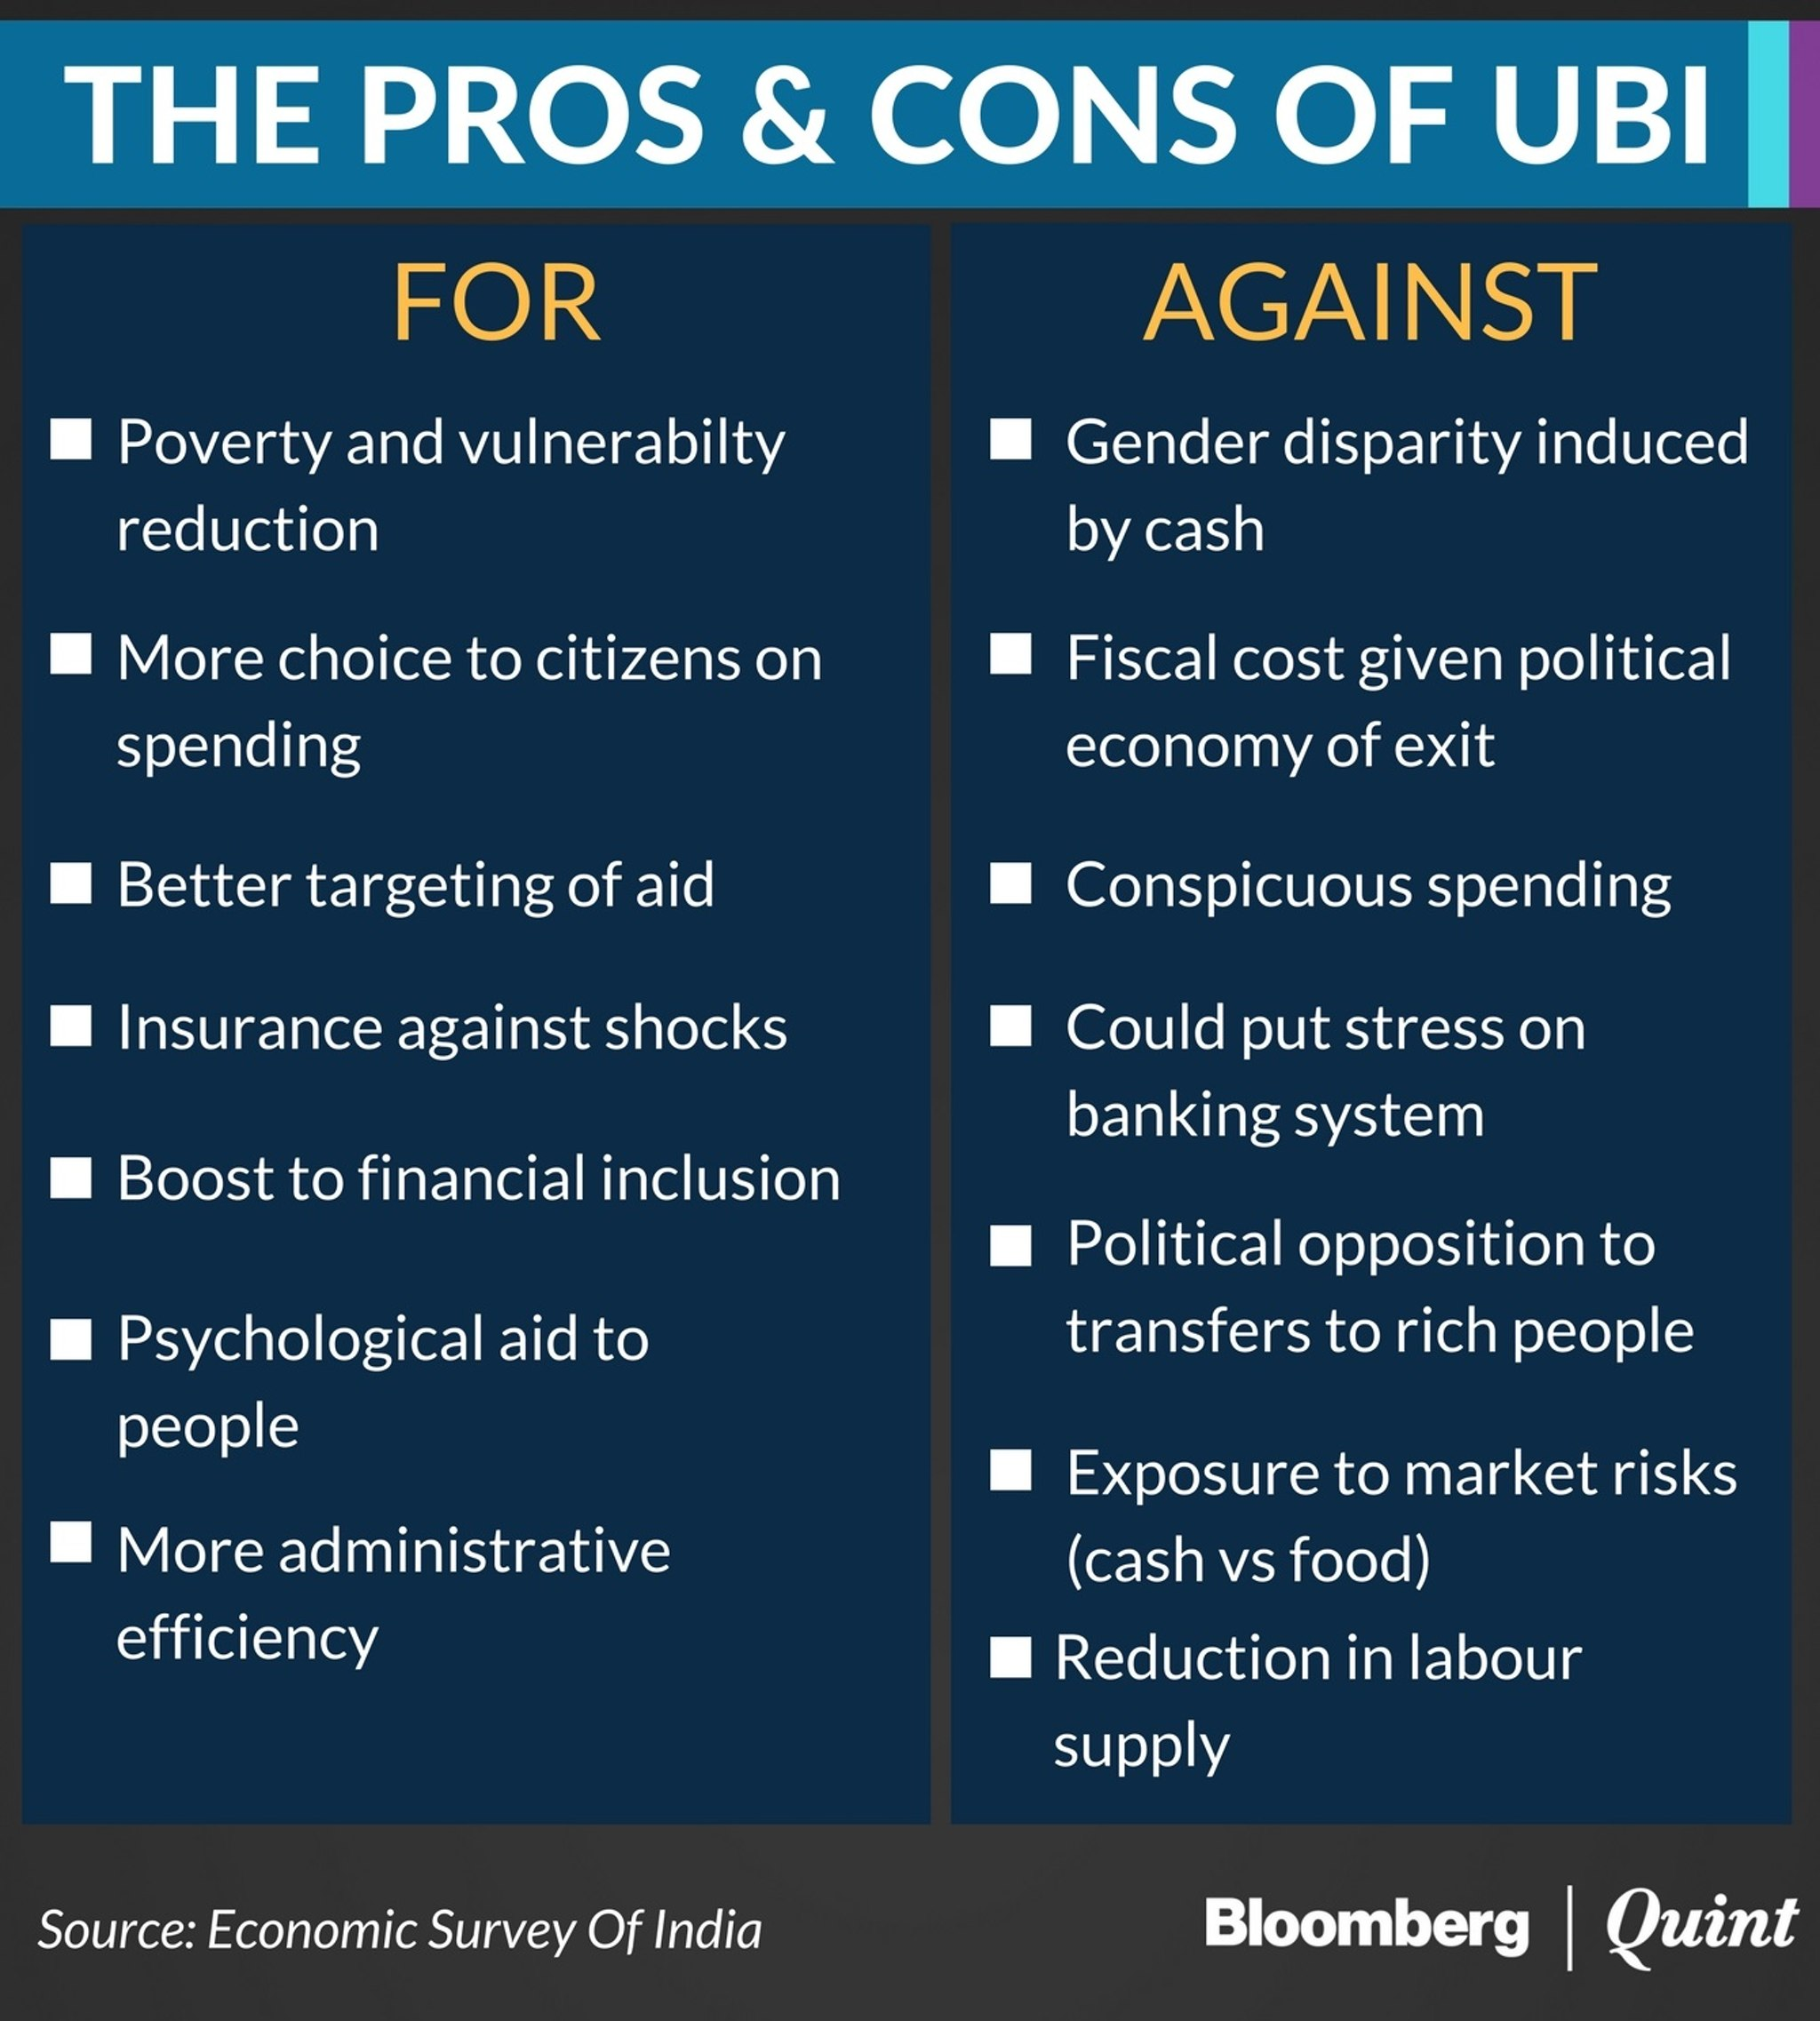 bloombergquint2017-016cf8b346-e85d-4b47-9c65-1ac5bef86981HED- Assessing Pros and Cons Of UBI (1)